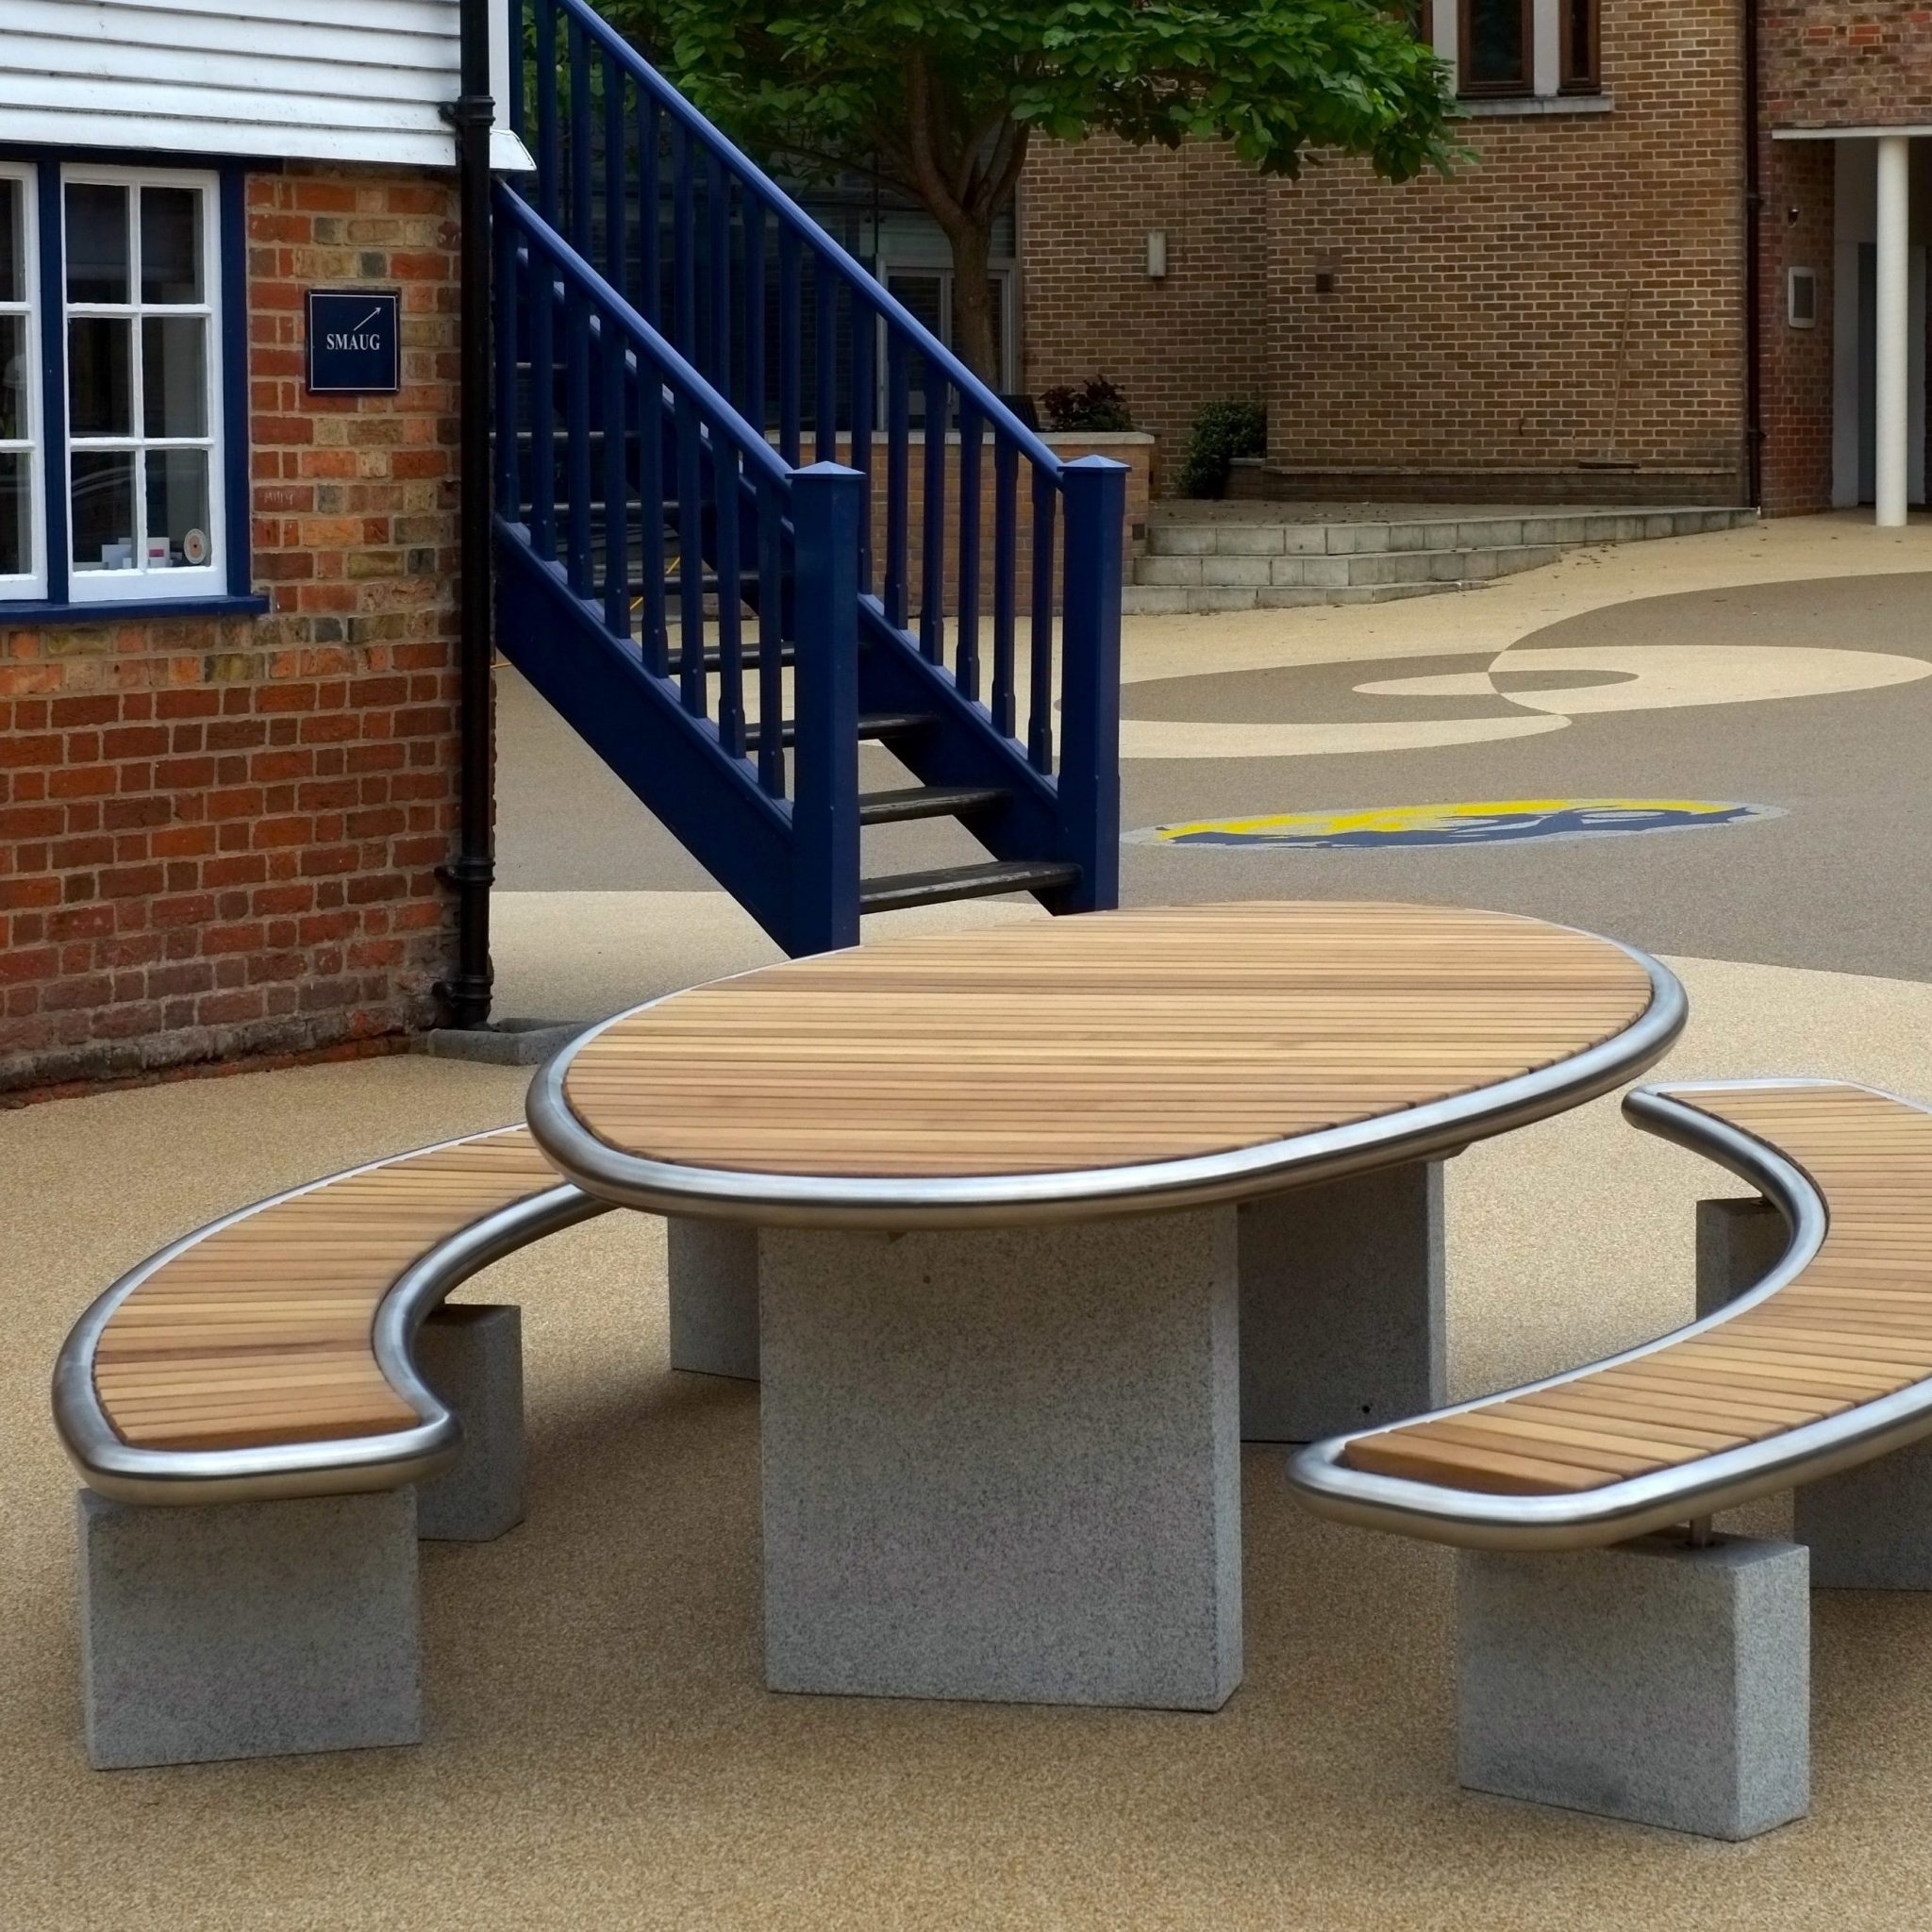 Benchmark Street Furniture Design And Manufacture Uk